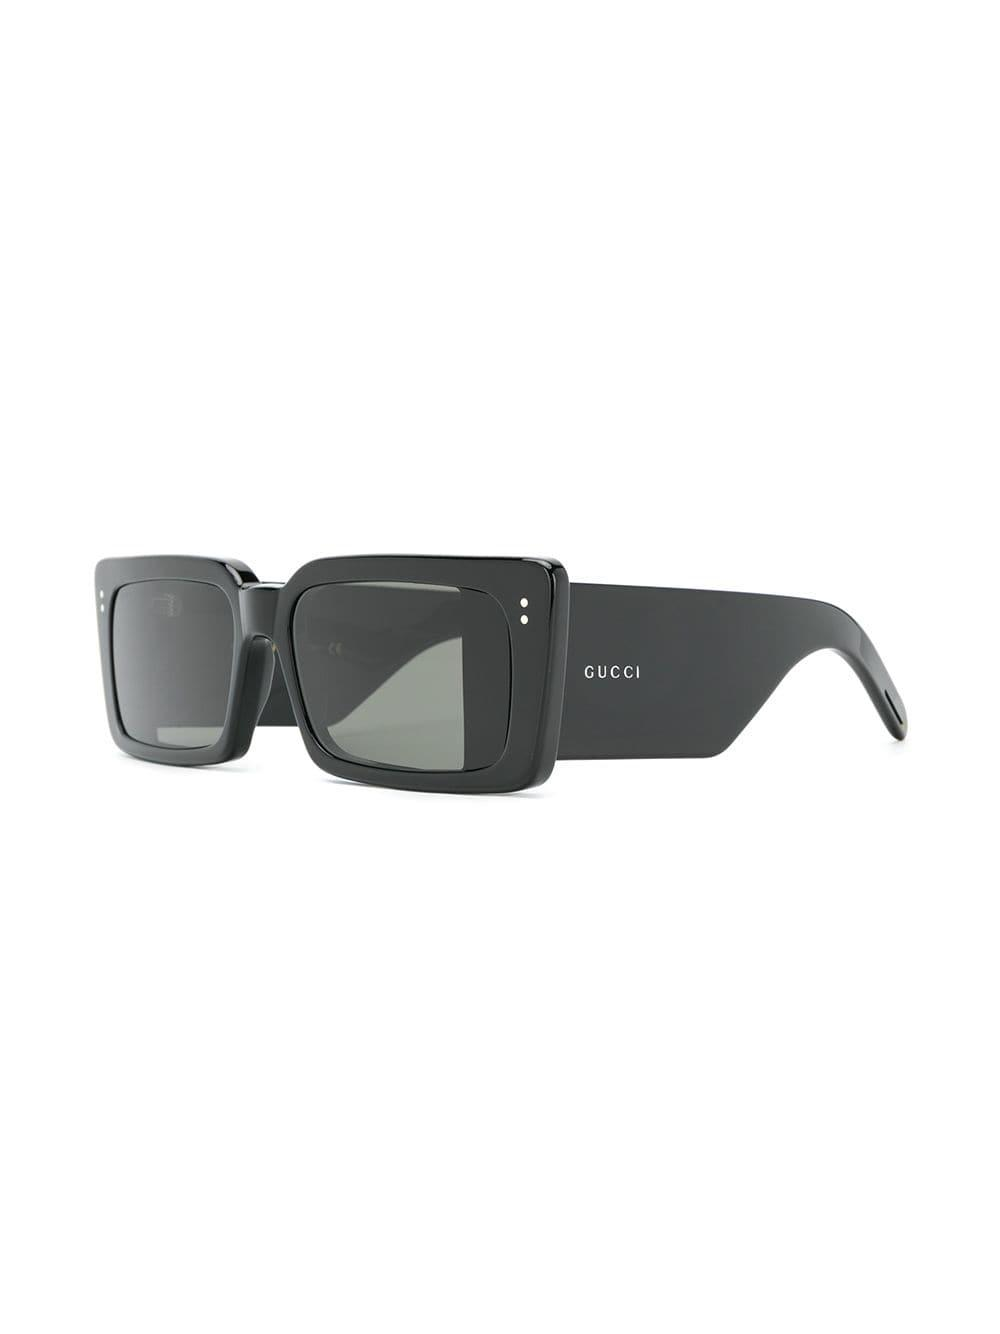 b2596b8bad0 Lyst - Gucci Square Frame Sunglasses in Black